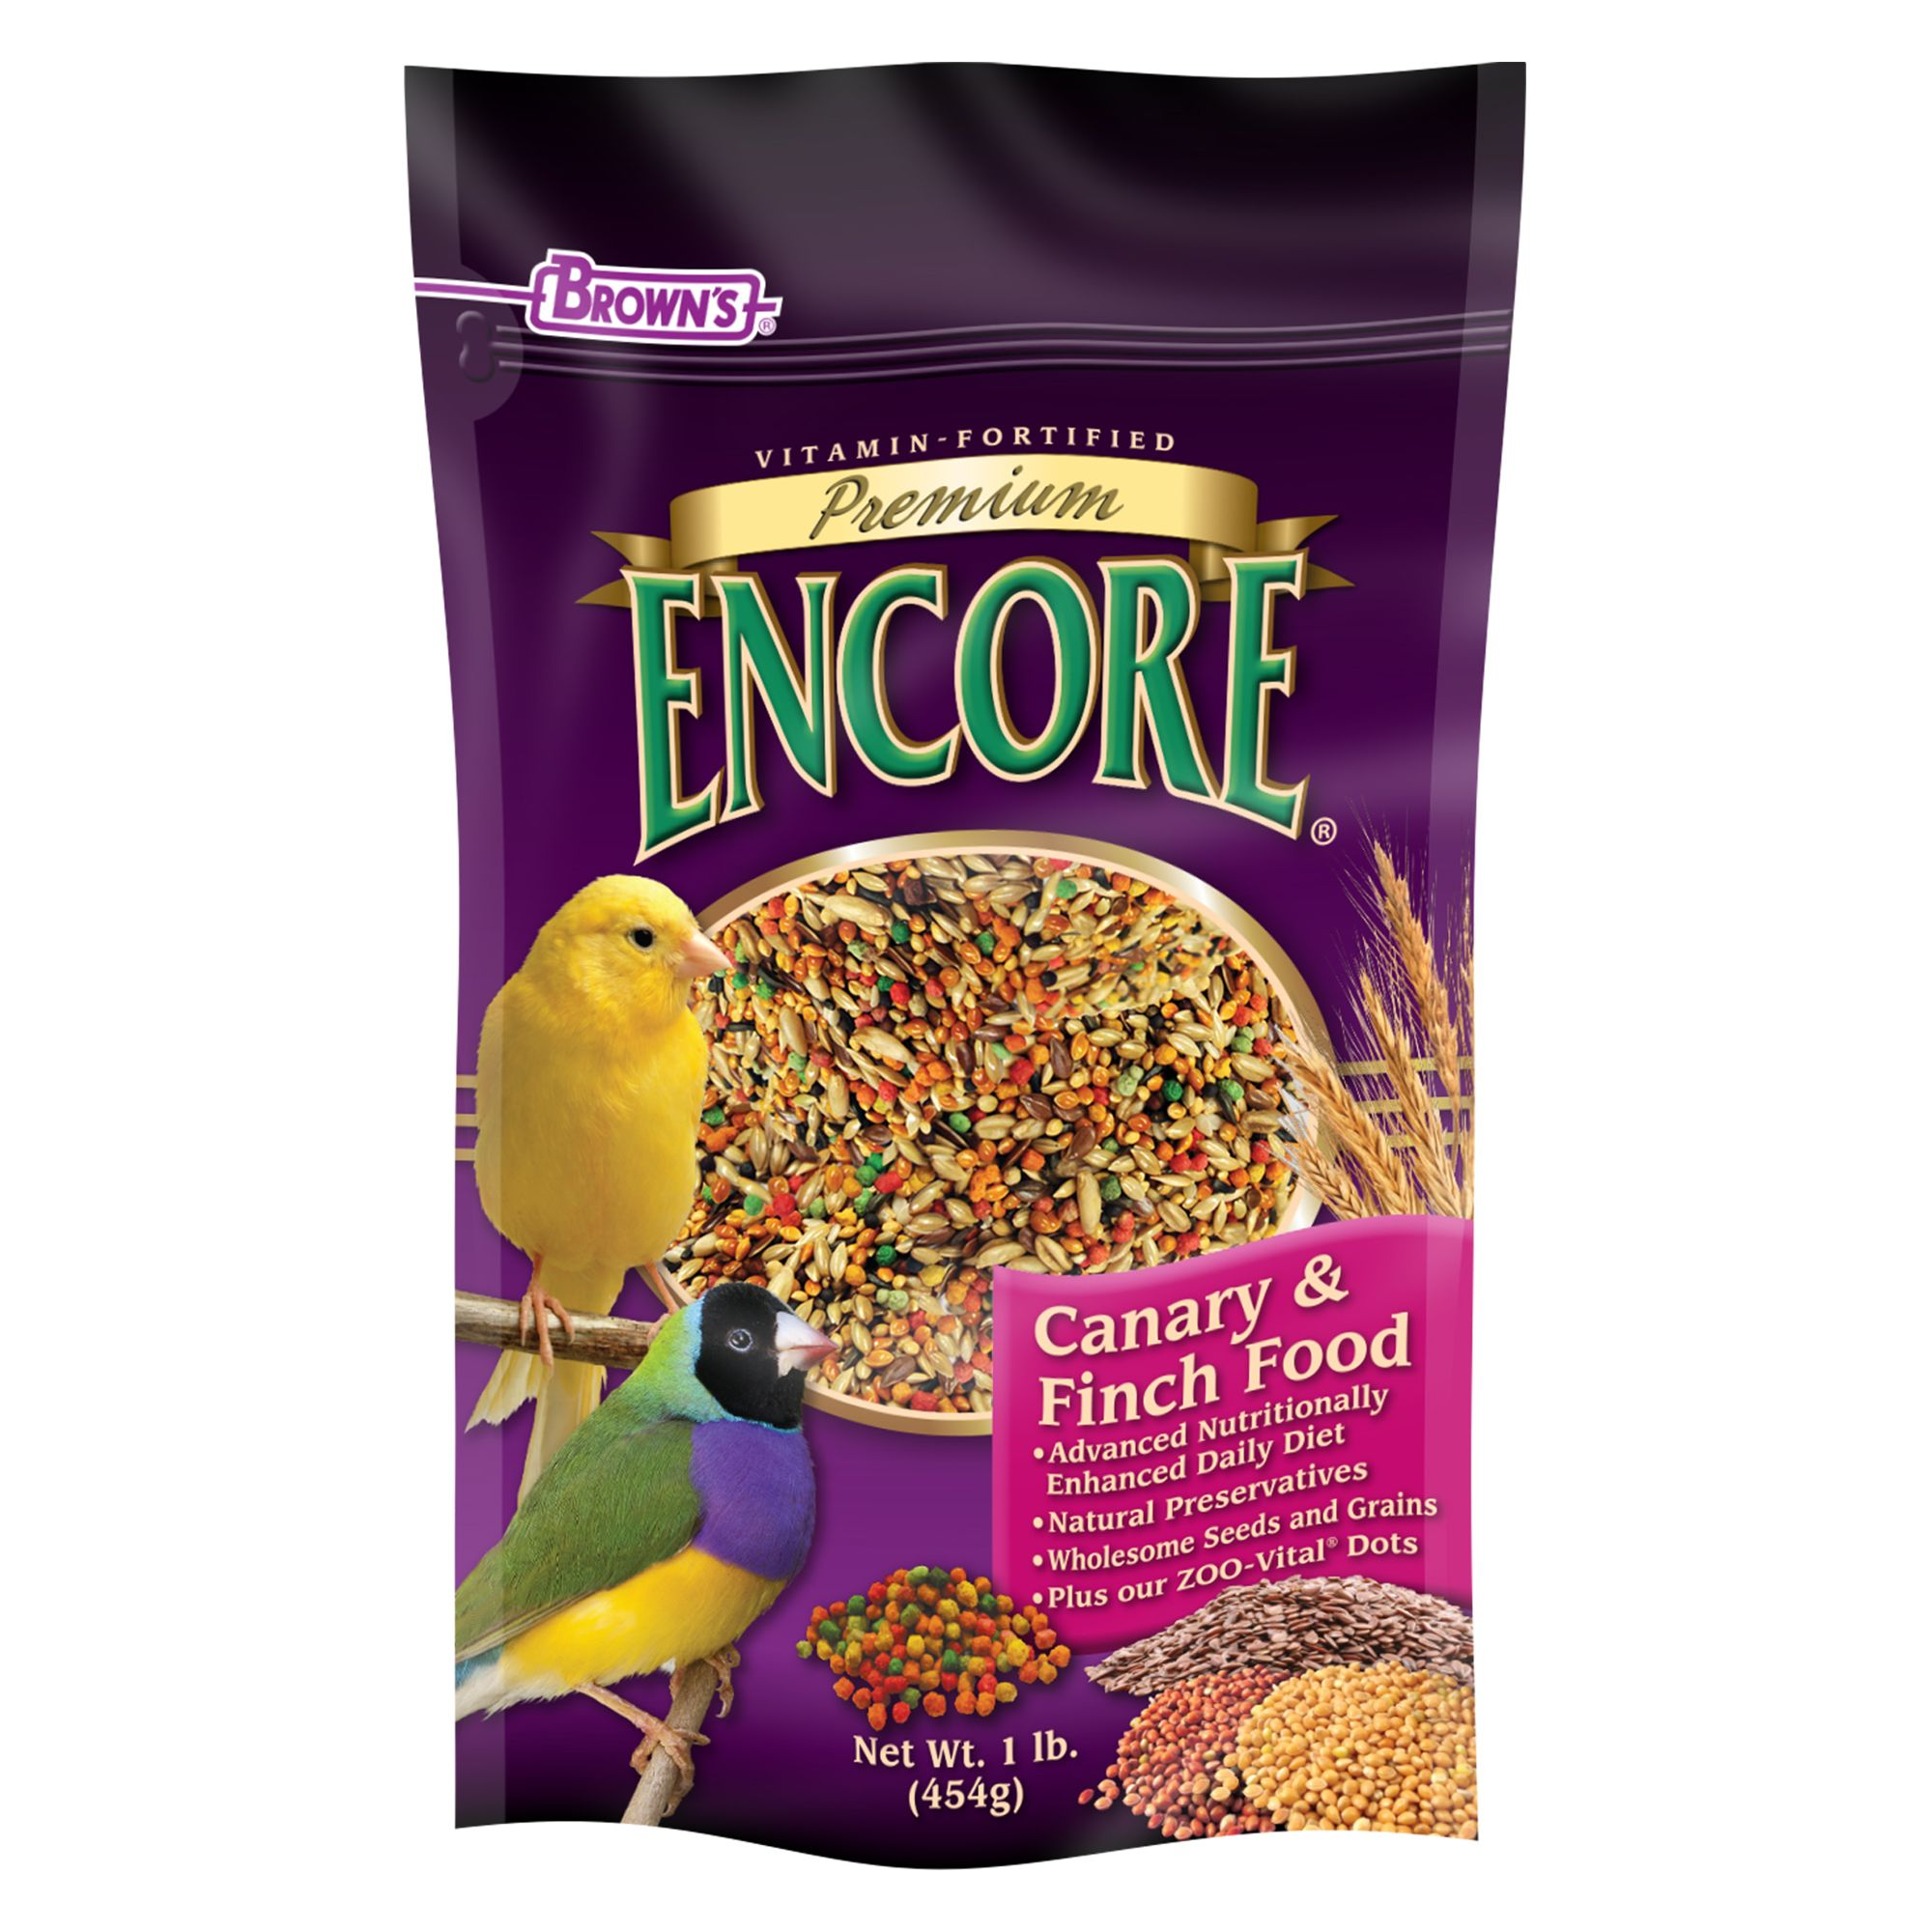 Browns Encore Premium Canary And Finch Food Size 1 Lb Fm Browns